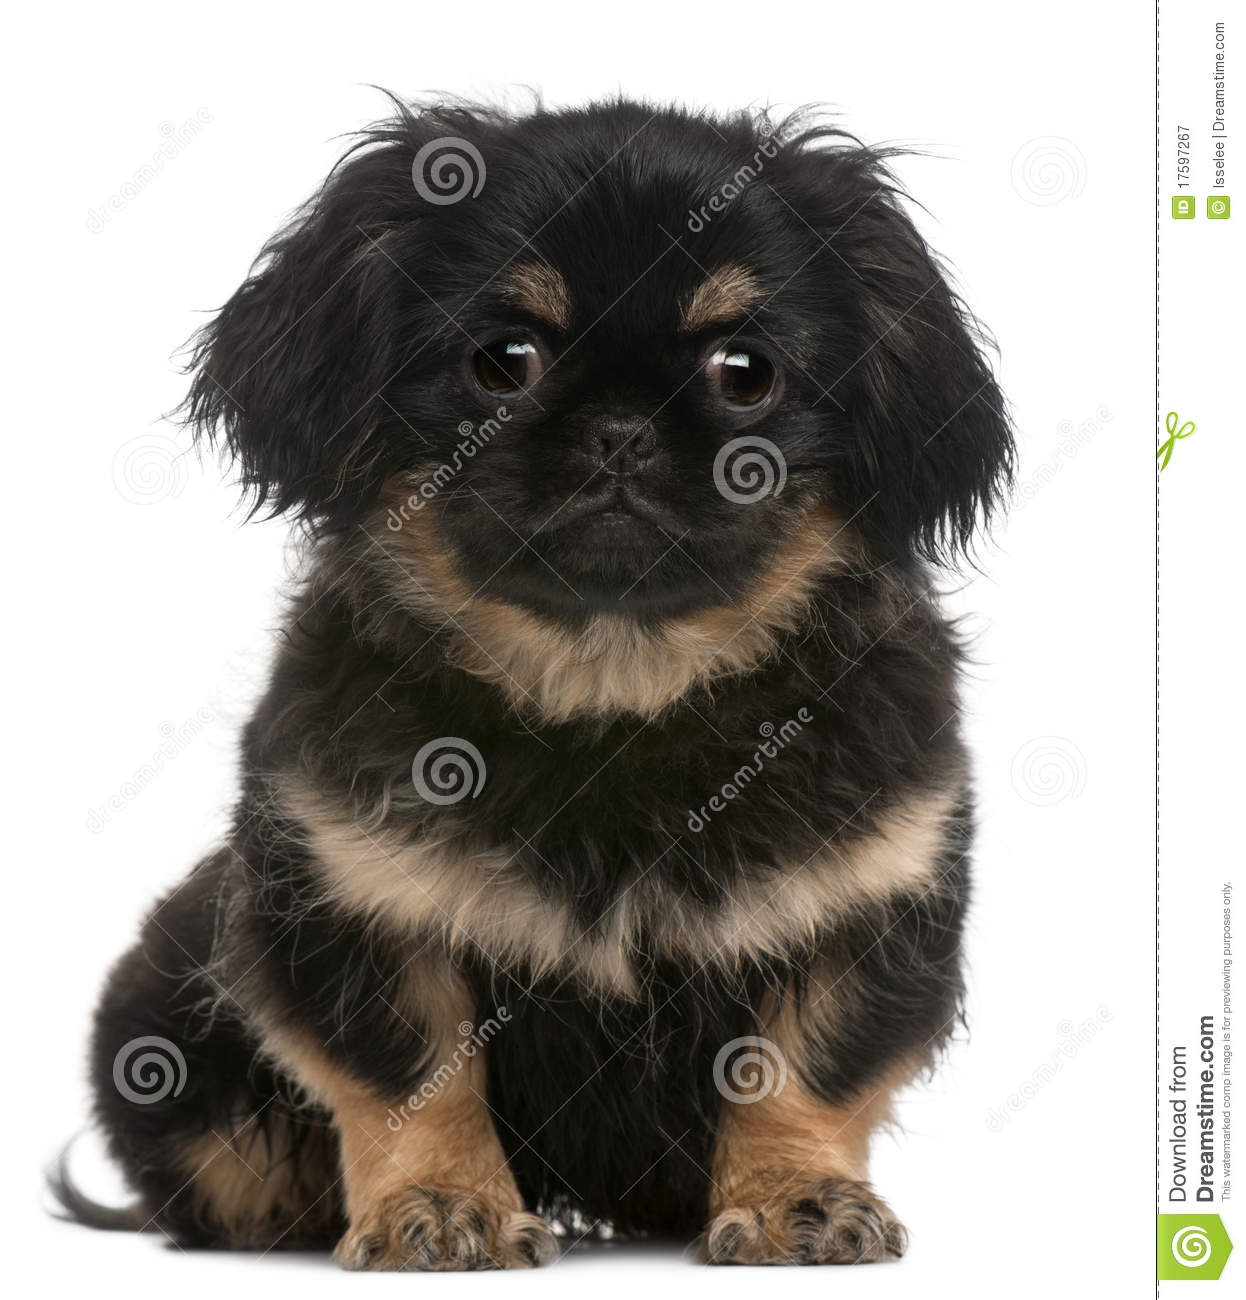 Pekingese puppy, 4 months old, sitting